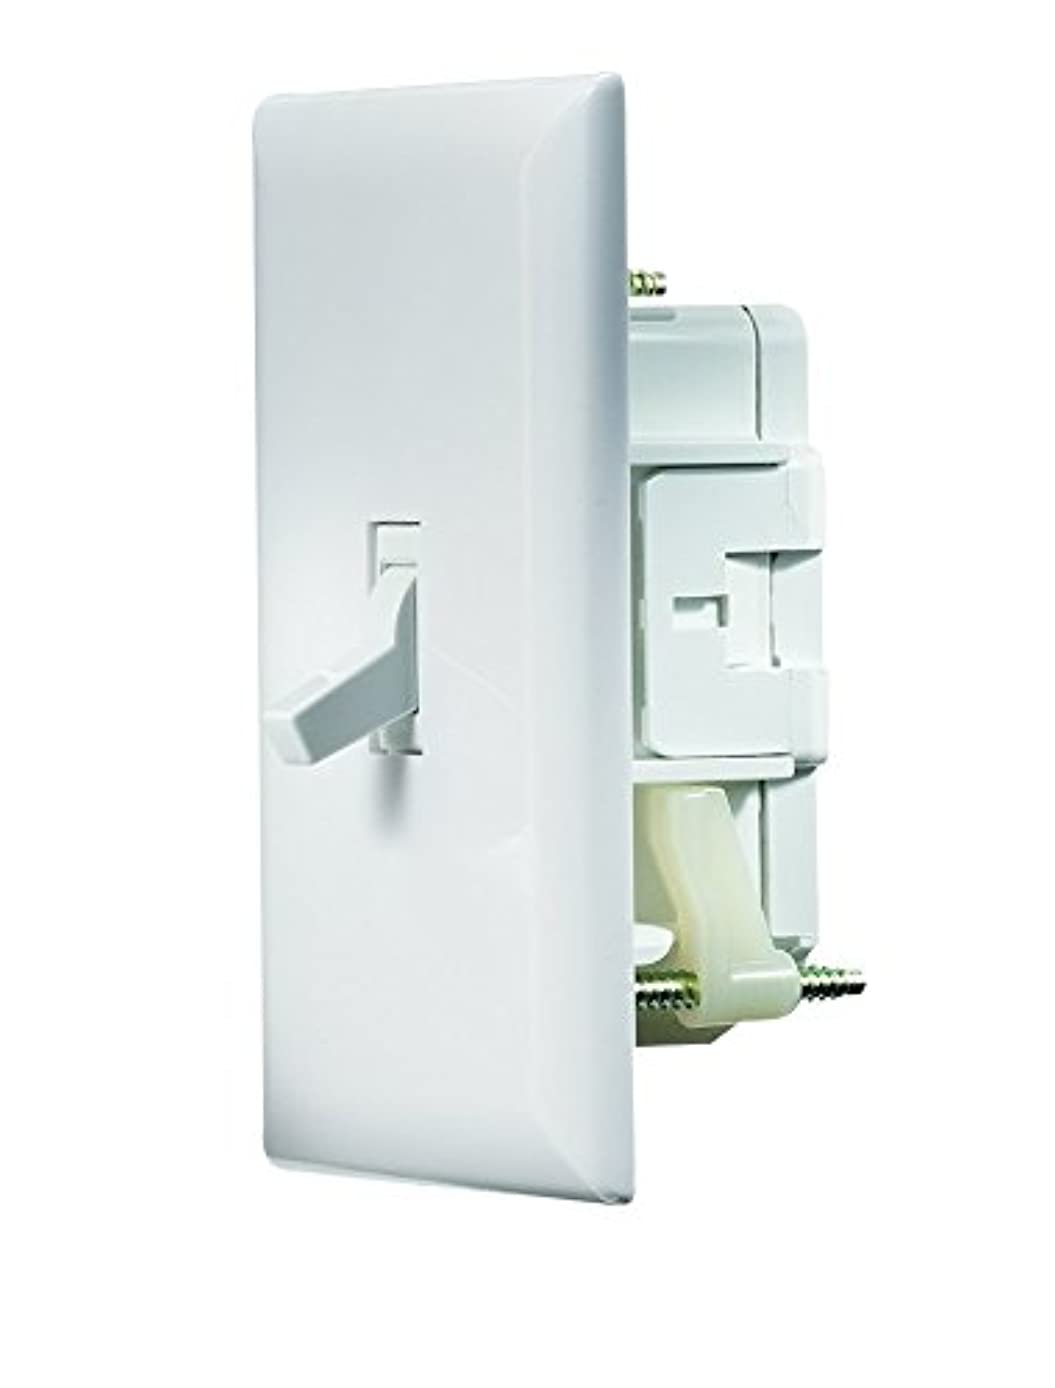 RV Designer S821, Self Contained Wall Switch with Cover Plate, White